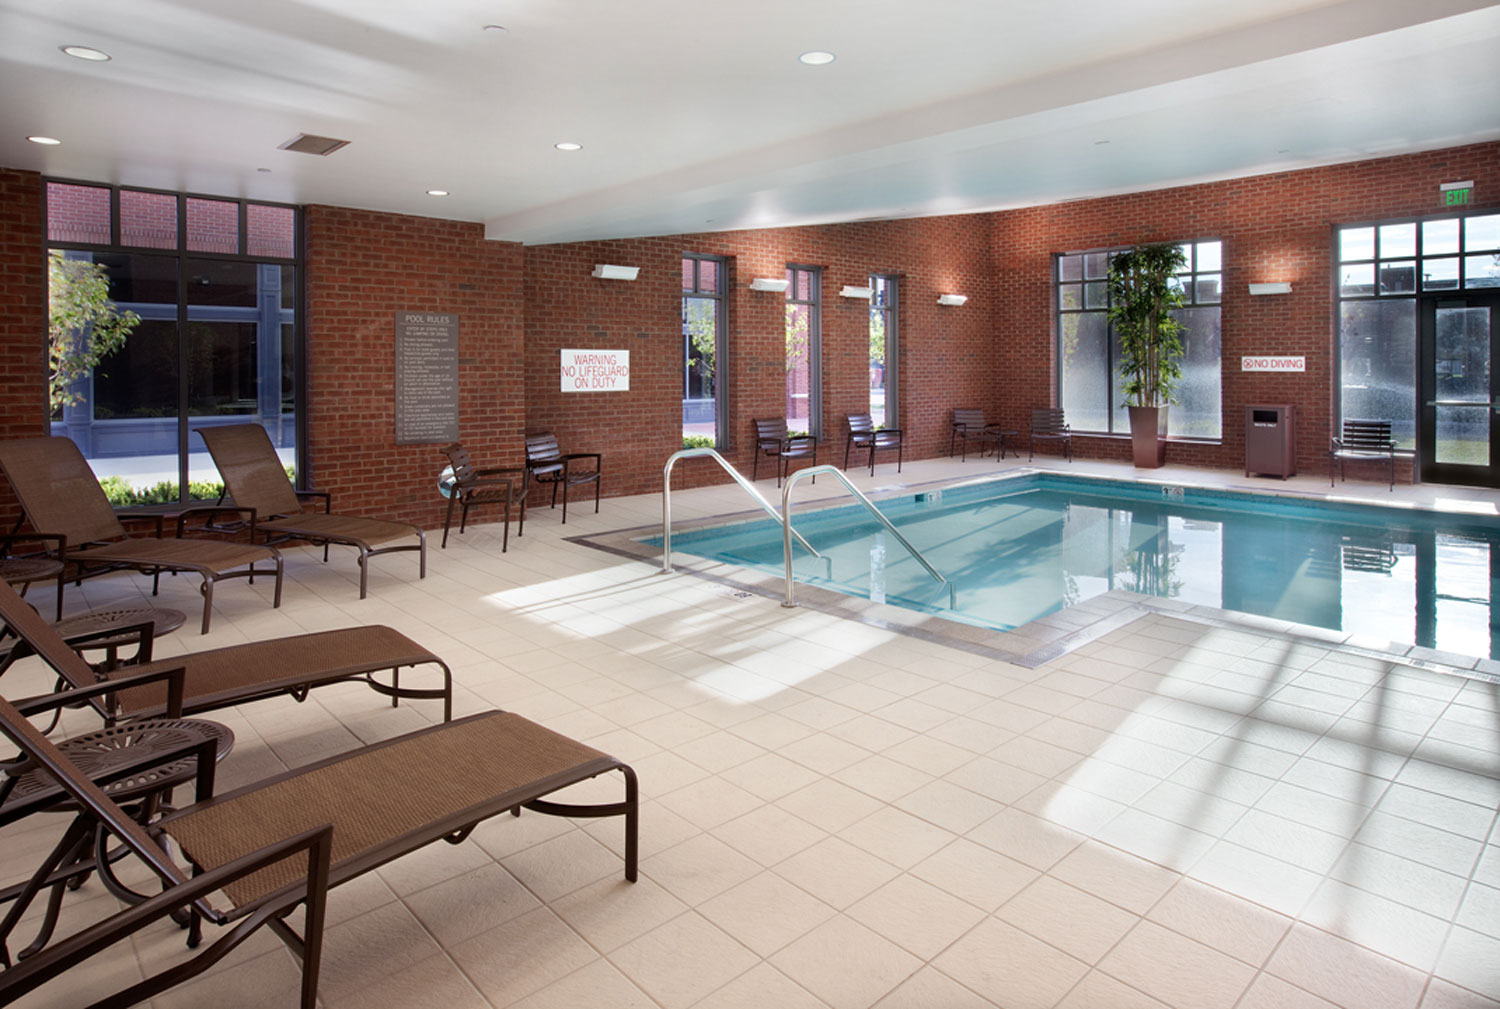 hyatt-place-pool.jpg